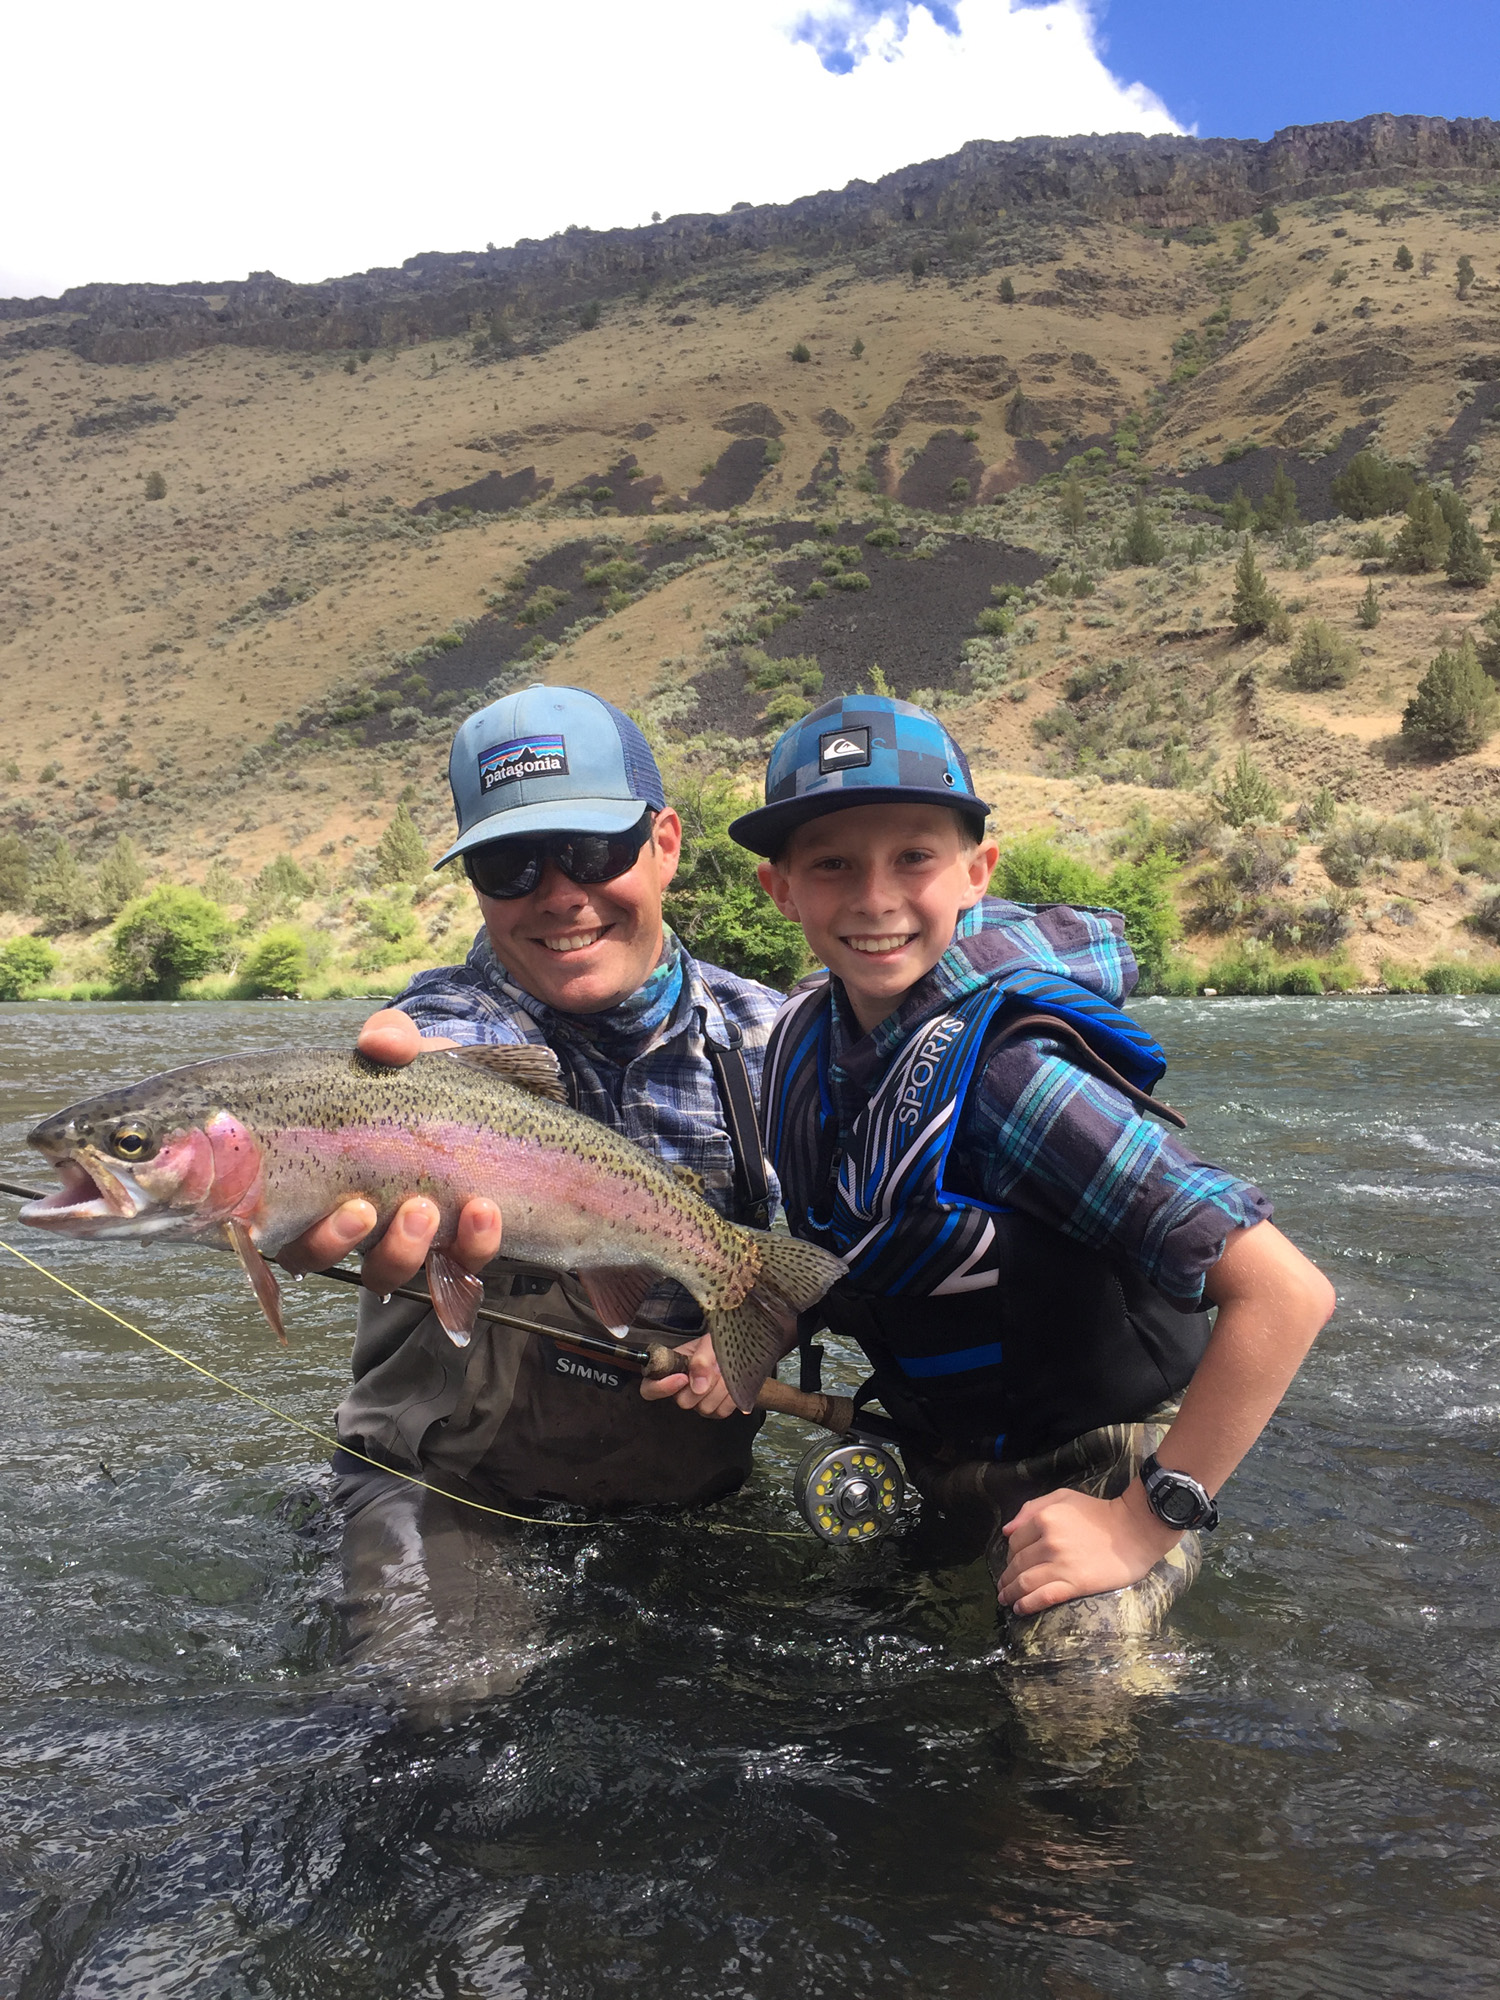 Ethan Anderson's first day with a fly rod